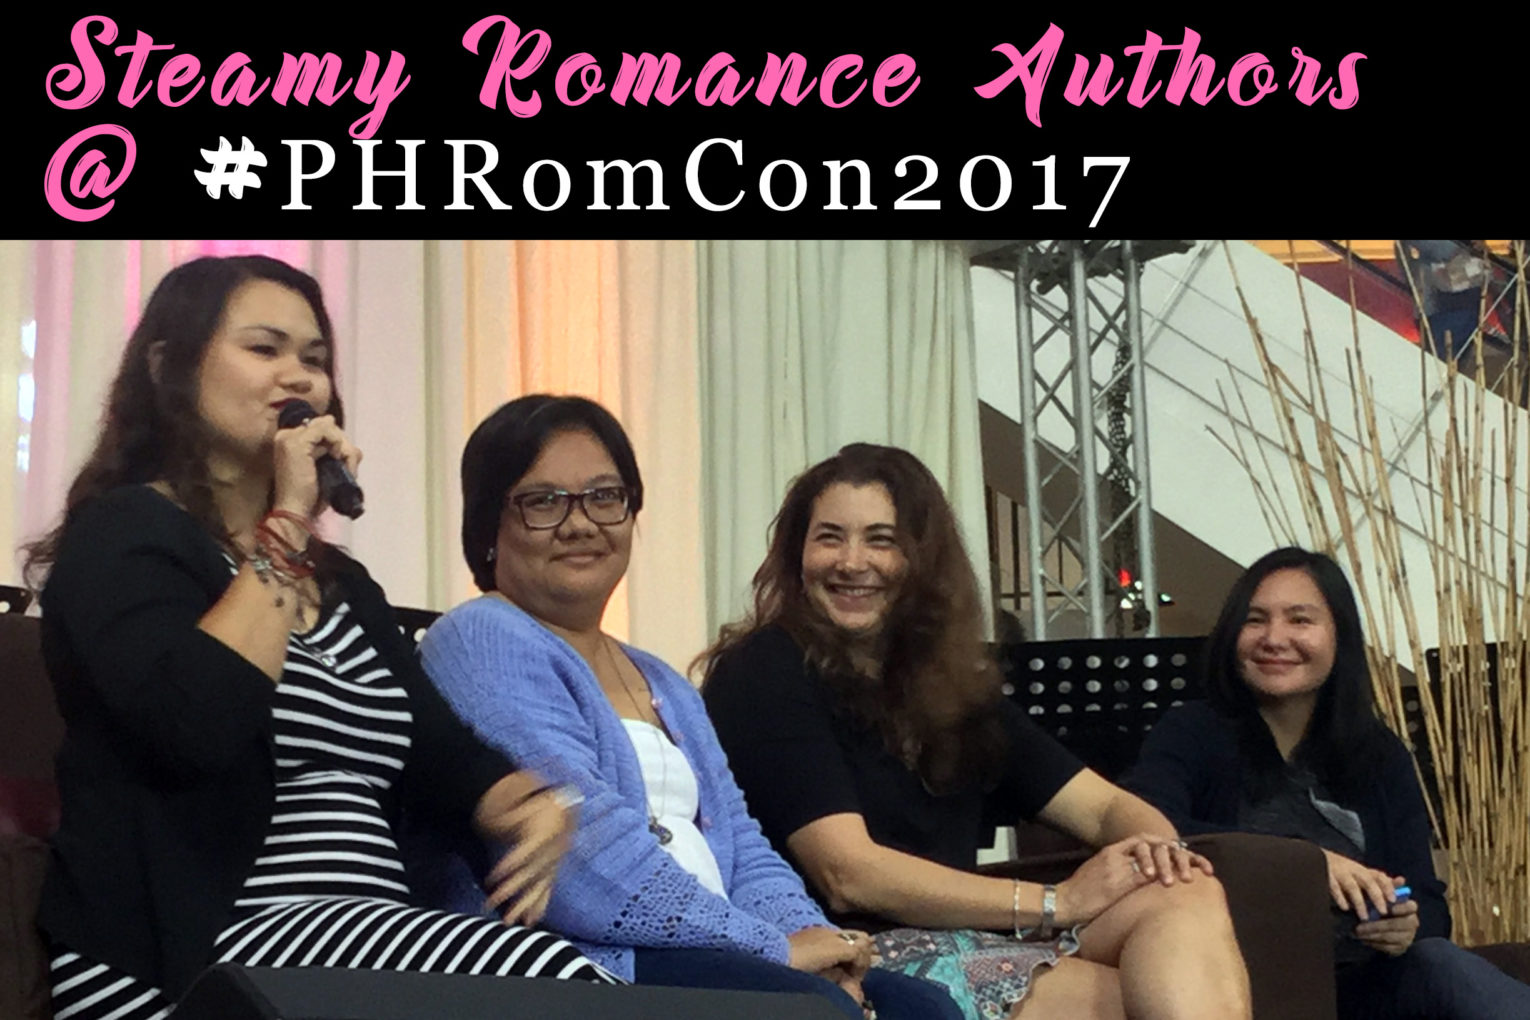 #PHRomCon2017: Steamy Romance Authors Panel with Mina V. Esguerra and Jennifer Hallock